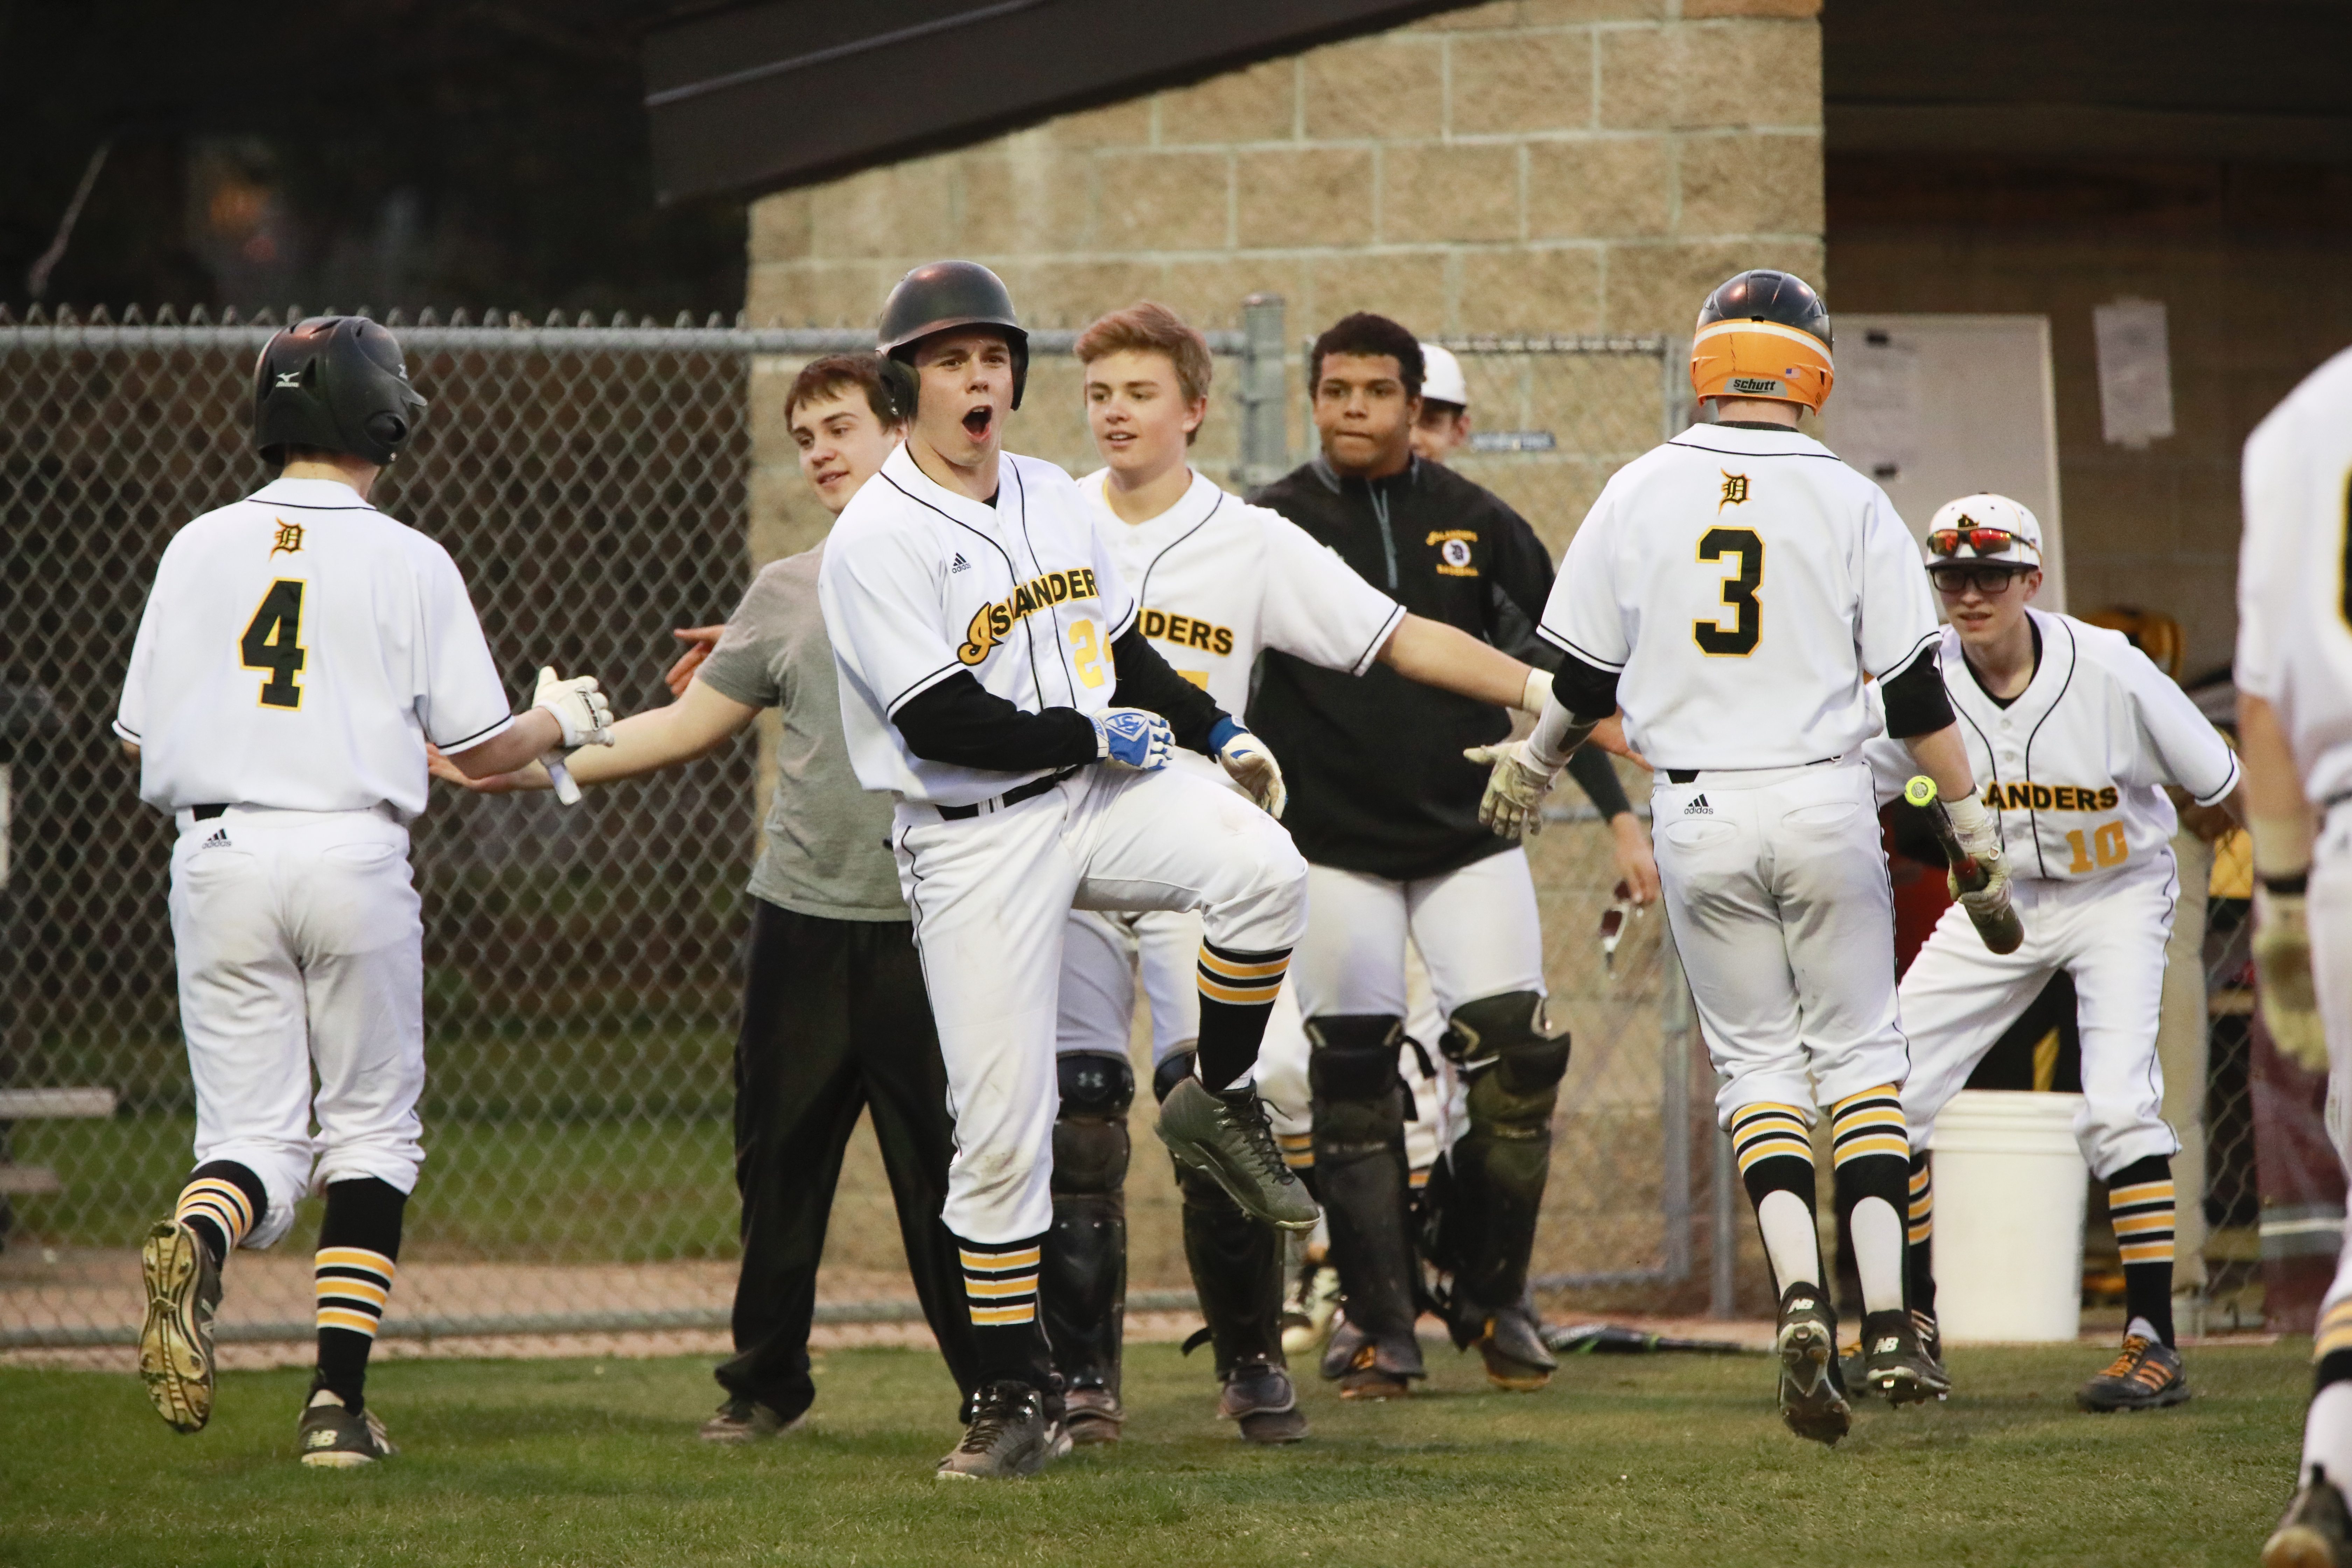 Apr 21, Paradise Field - DeLaSalle High School cheer as Joe Parenteau (3), Sam Kulesa (4), and  Gavin Taylor (24) scored runs in a game that ended in a 10-5 victory over Fridley High School. Photos by Chris Juhn/Sports Engine